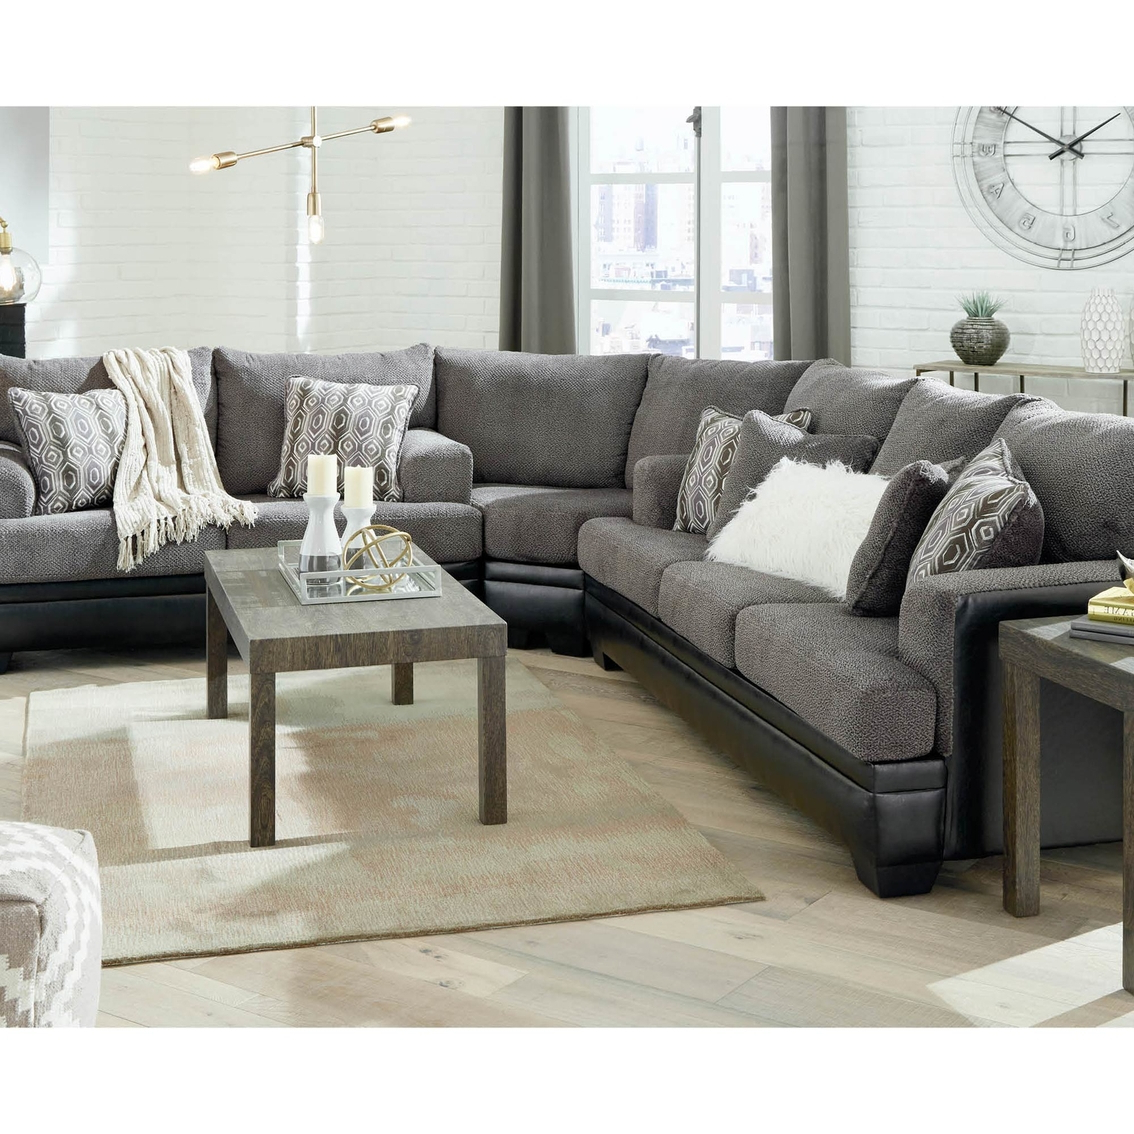 Most Recently Released Turdur 3 Piece Sectionals With Raf Loveseat Pertaining To Sectional Couch Vs Sofa And Loveseat – Blog Avie (View 12 of 20)